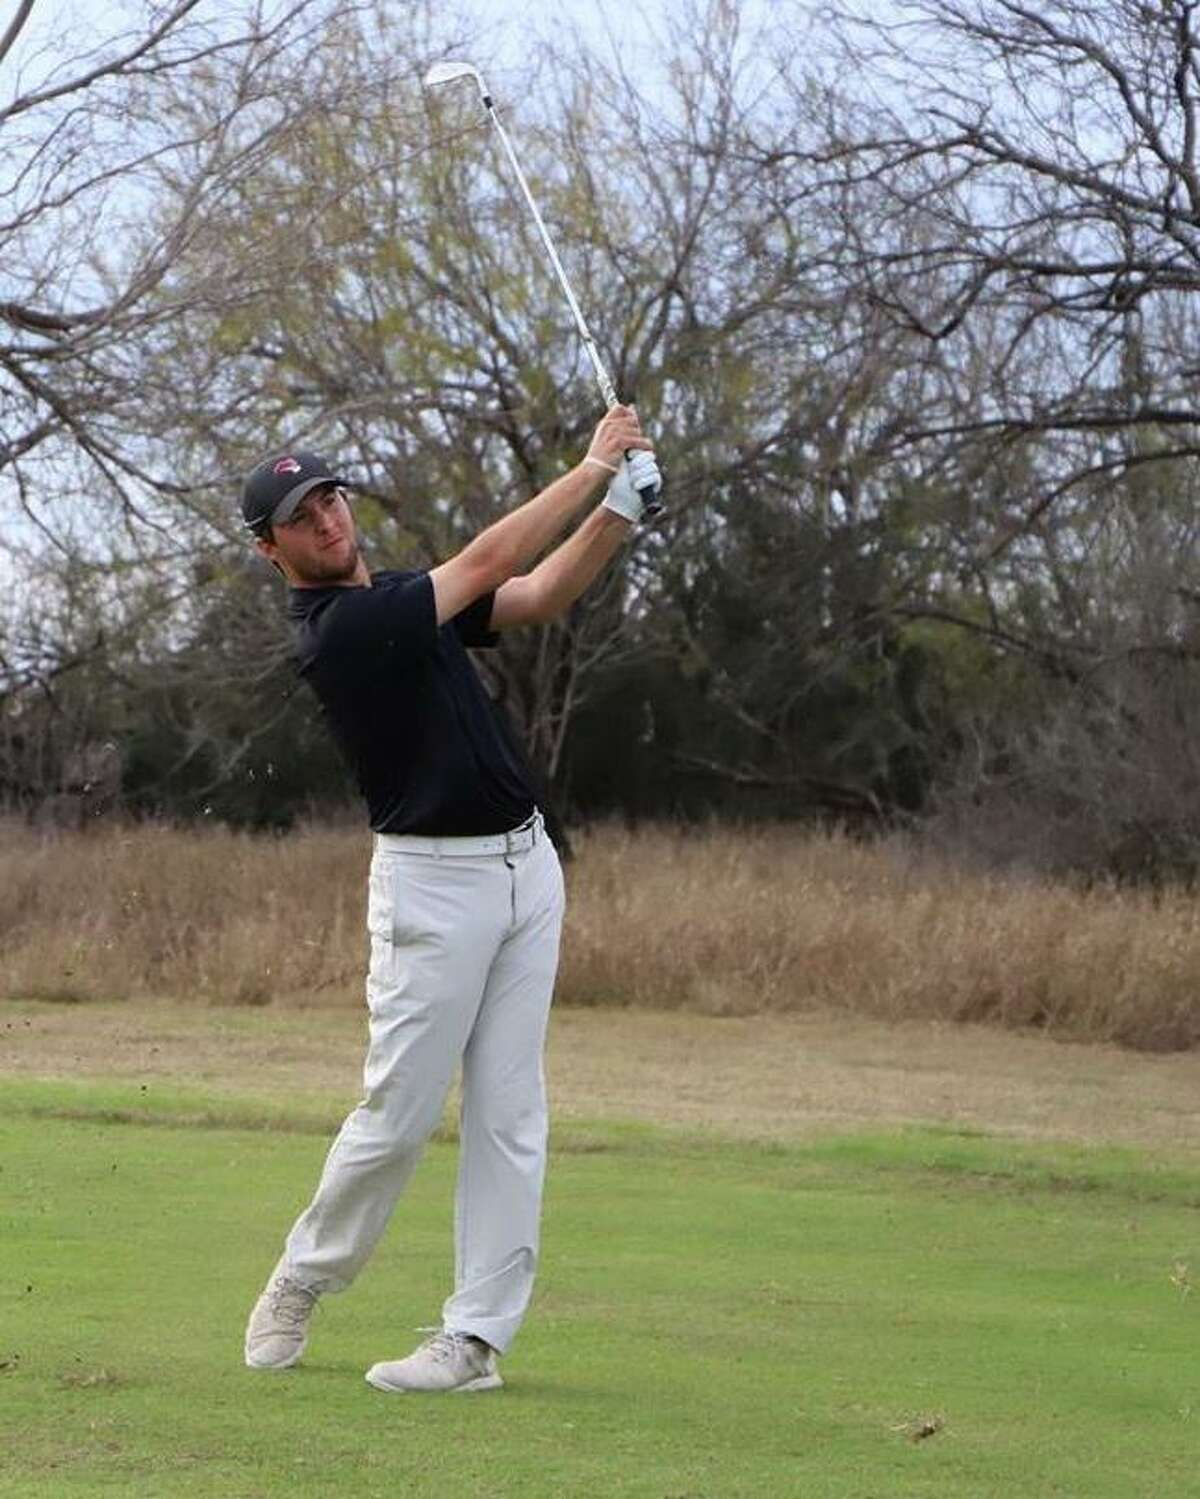 TAMIU's Parker Holekamp shot a three-under 141 to take the lead after the first day of the Jack Brown Memorial Invitational at the Laredo Country Club.